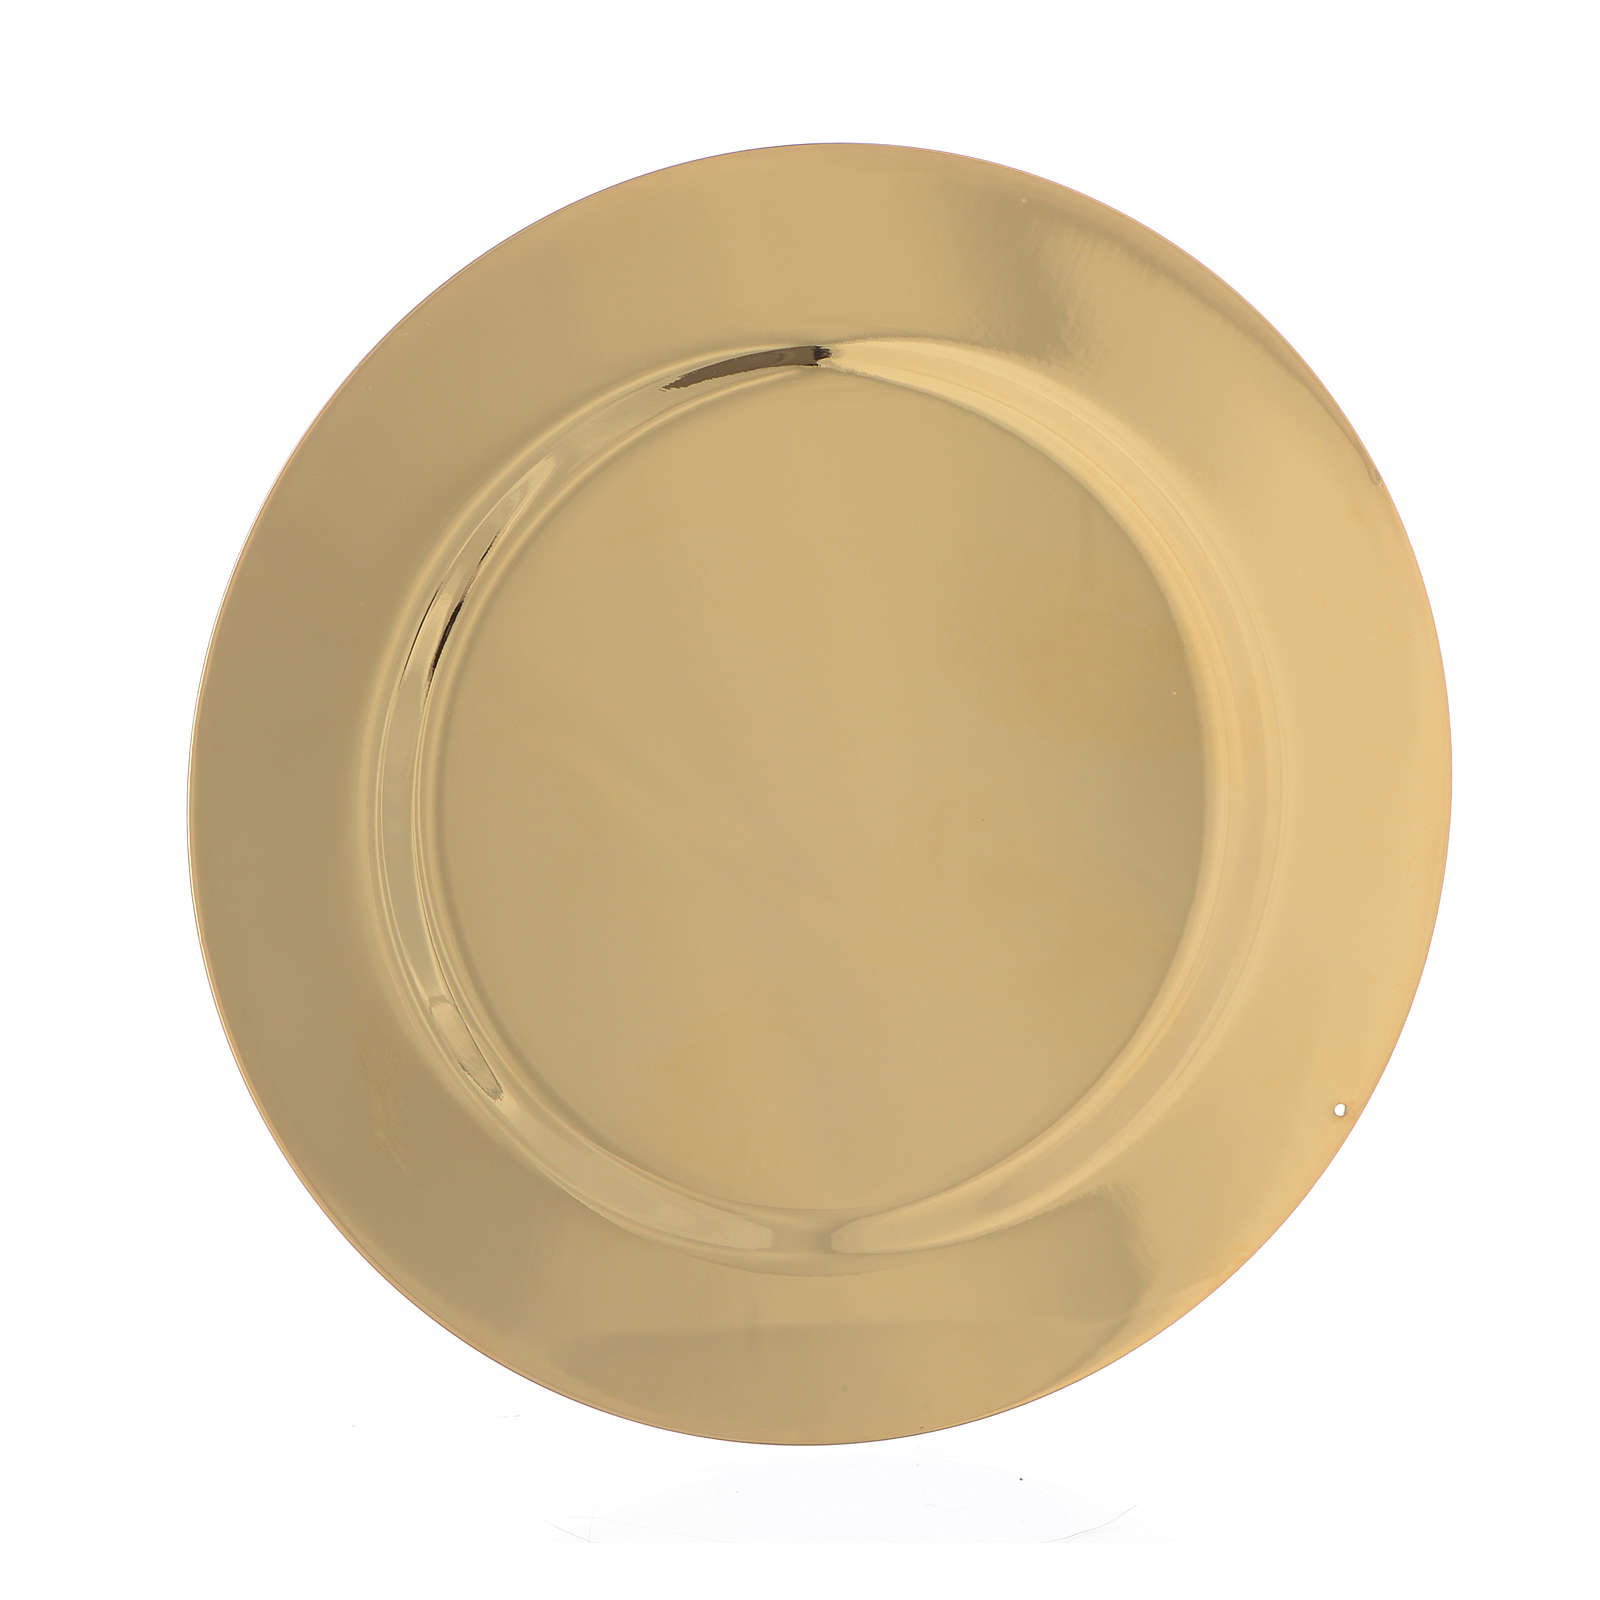 Paten smooth and shaped brass, 11cm 4